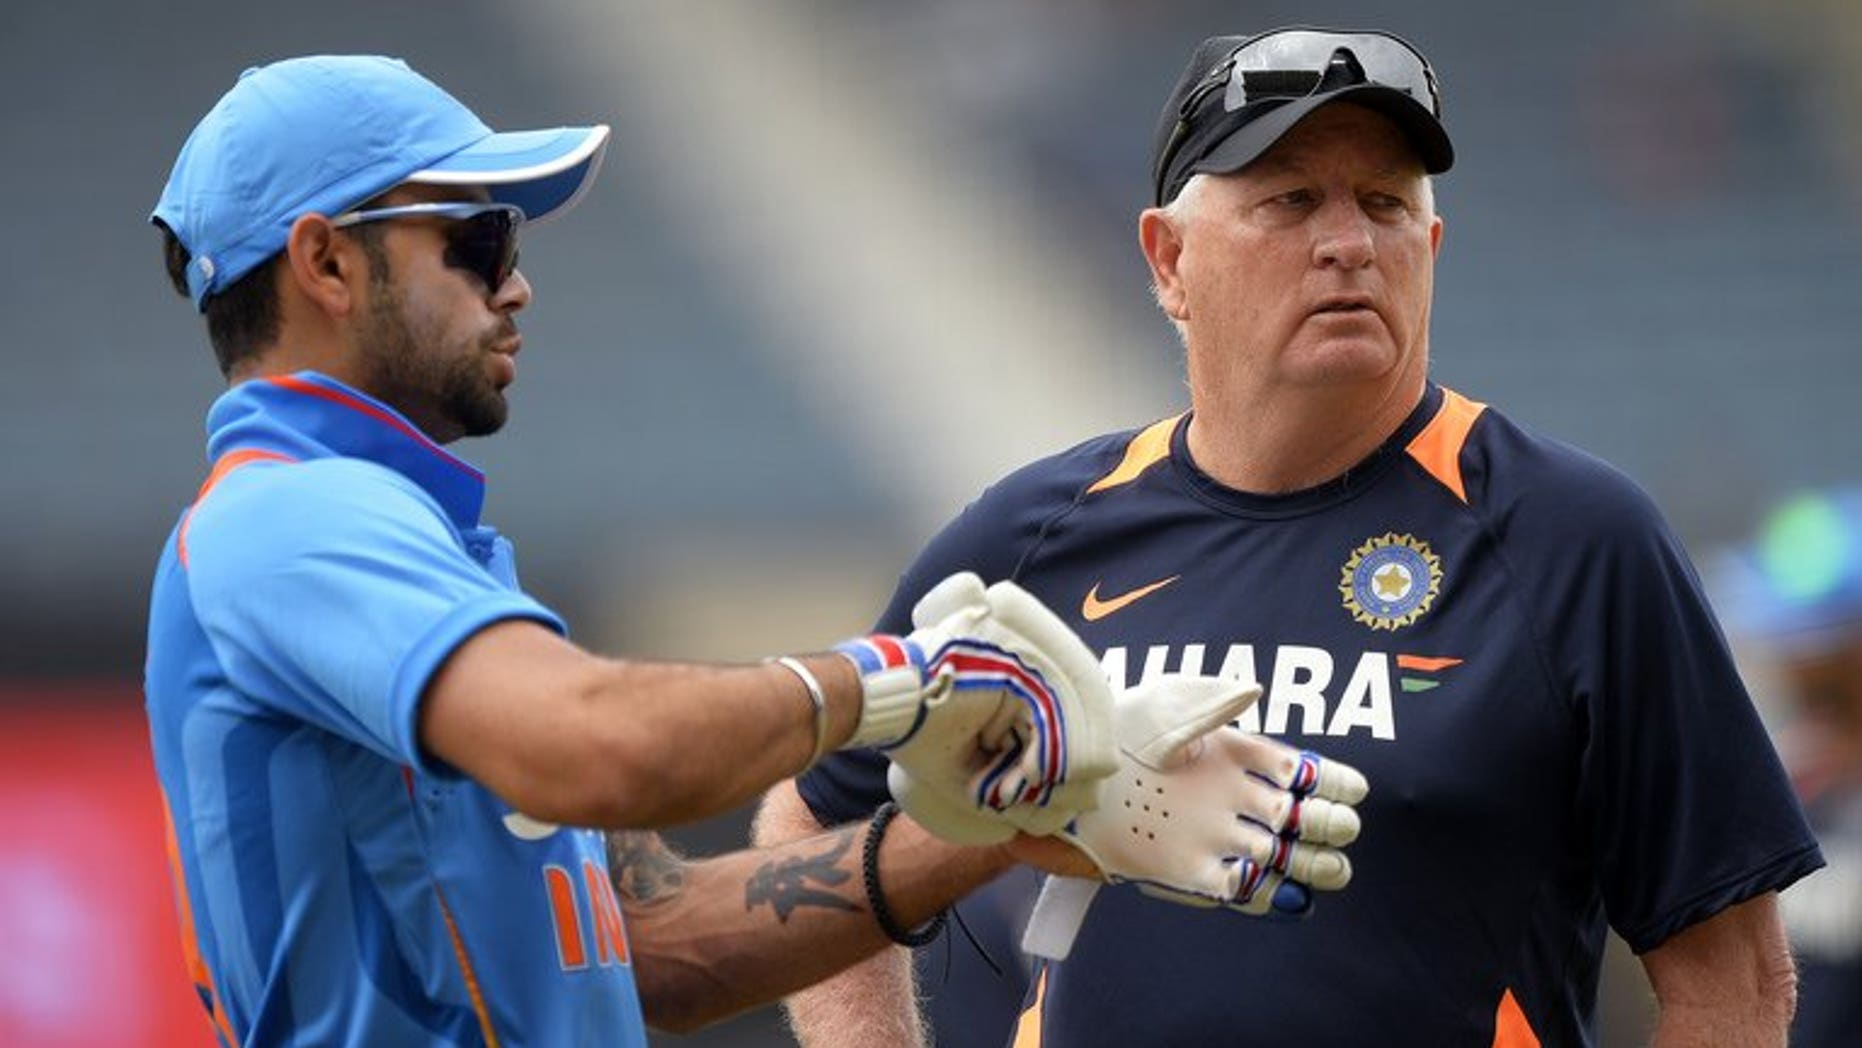 Indian captain Virat Kohli (left) confers with coach Duncan Fletcher before the start of the Tri-Nation one-day match against Sri Lanka at the Sabina Park stadium in Kingston, on July 2, 2013. Indian won the toss and elected to field.